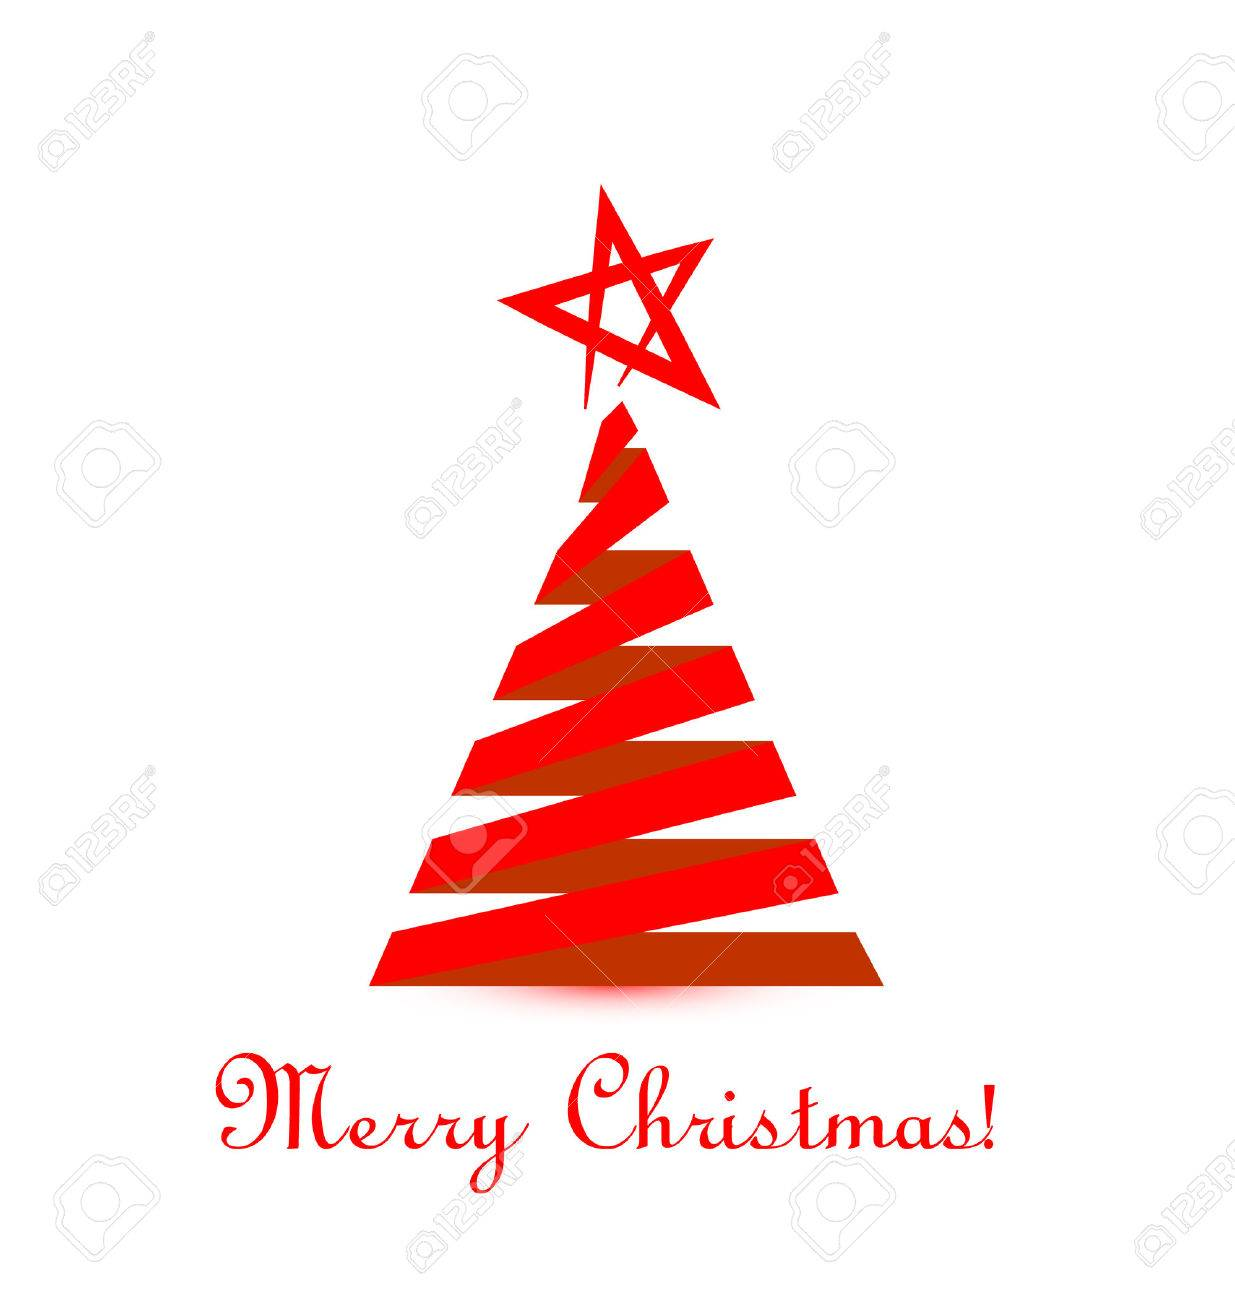 Red Christmas Tree.Red Christmas Tree Vector